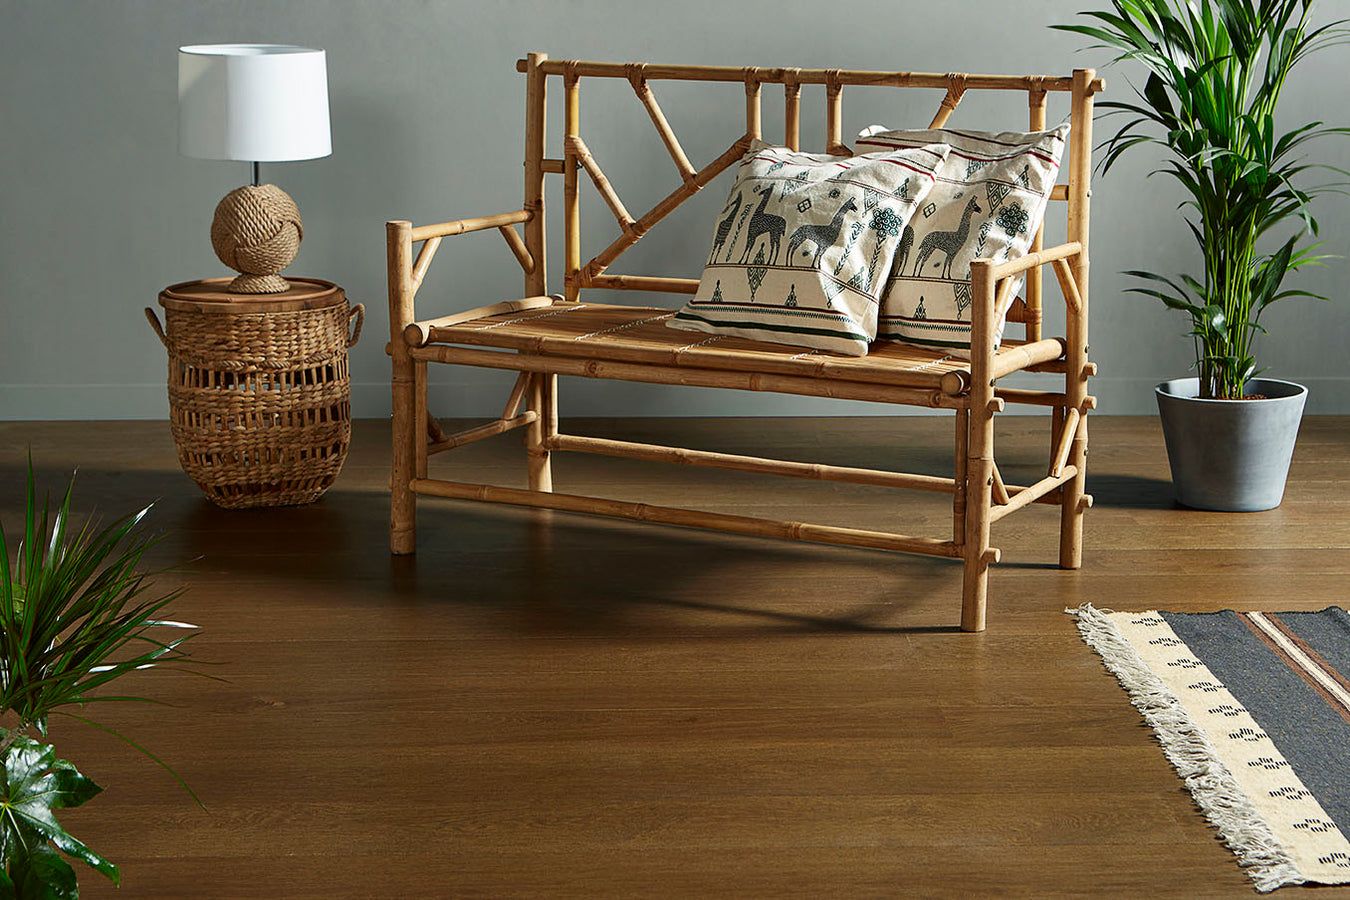 Classic hardwood flooring with a modern design from Rivafloors.